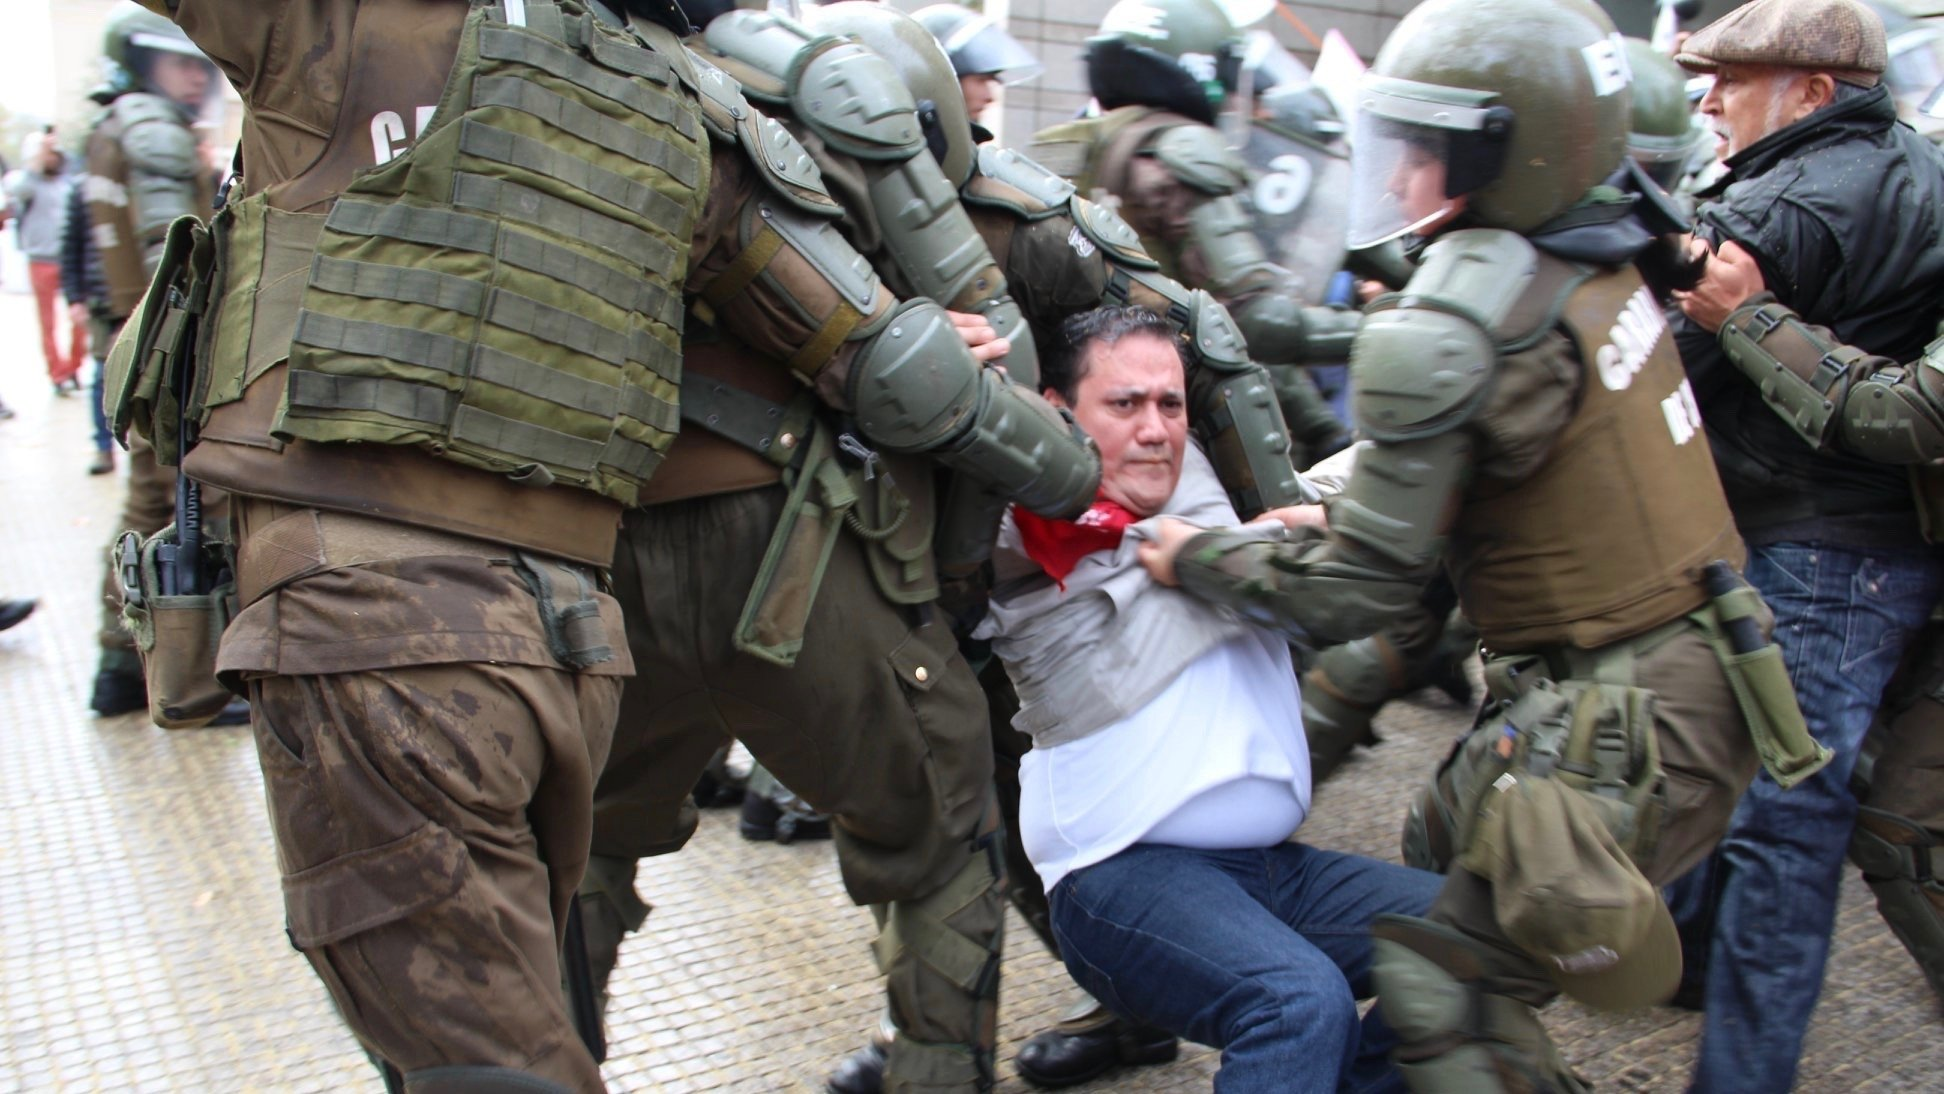 More than 90 people were arrested during the National Protest held in Santiago, Chile on September 5. (Photo: CUT/Facebook)